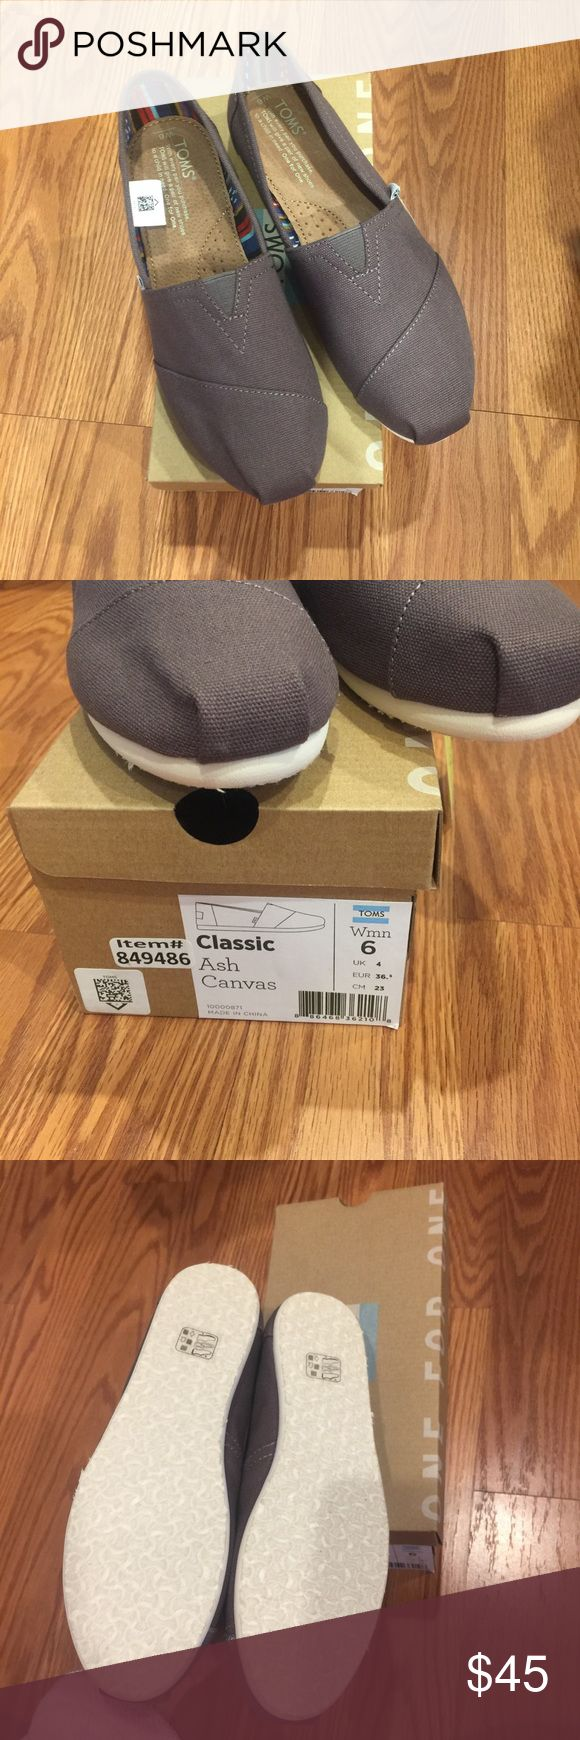 Ash gray toms. Brand new. Size 6 Authentic and never used. Size 6. Firm price Toms Shoes Sneakers